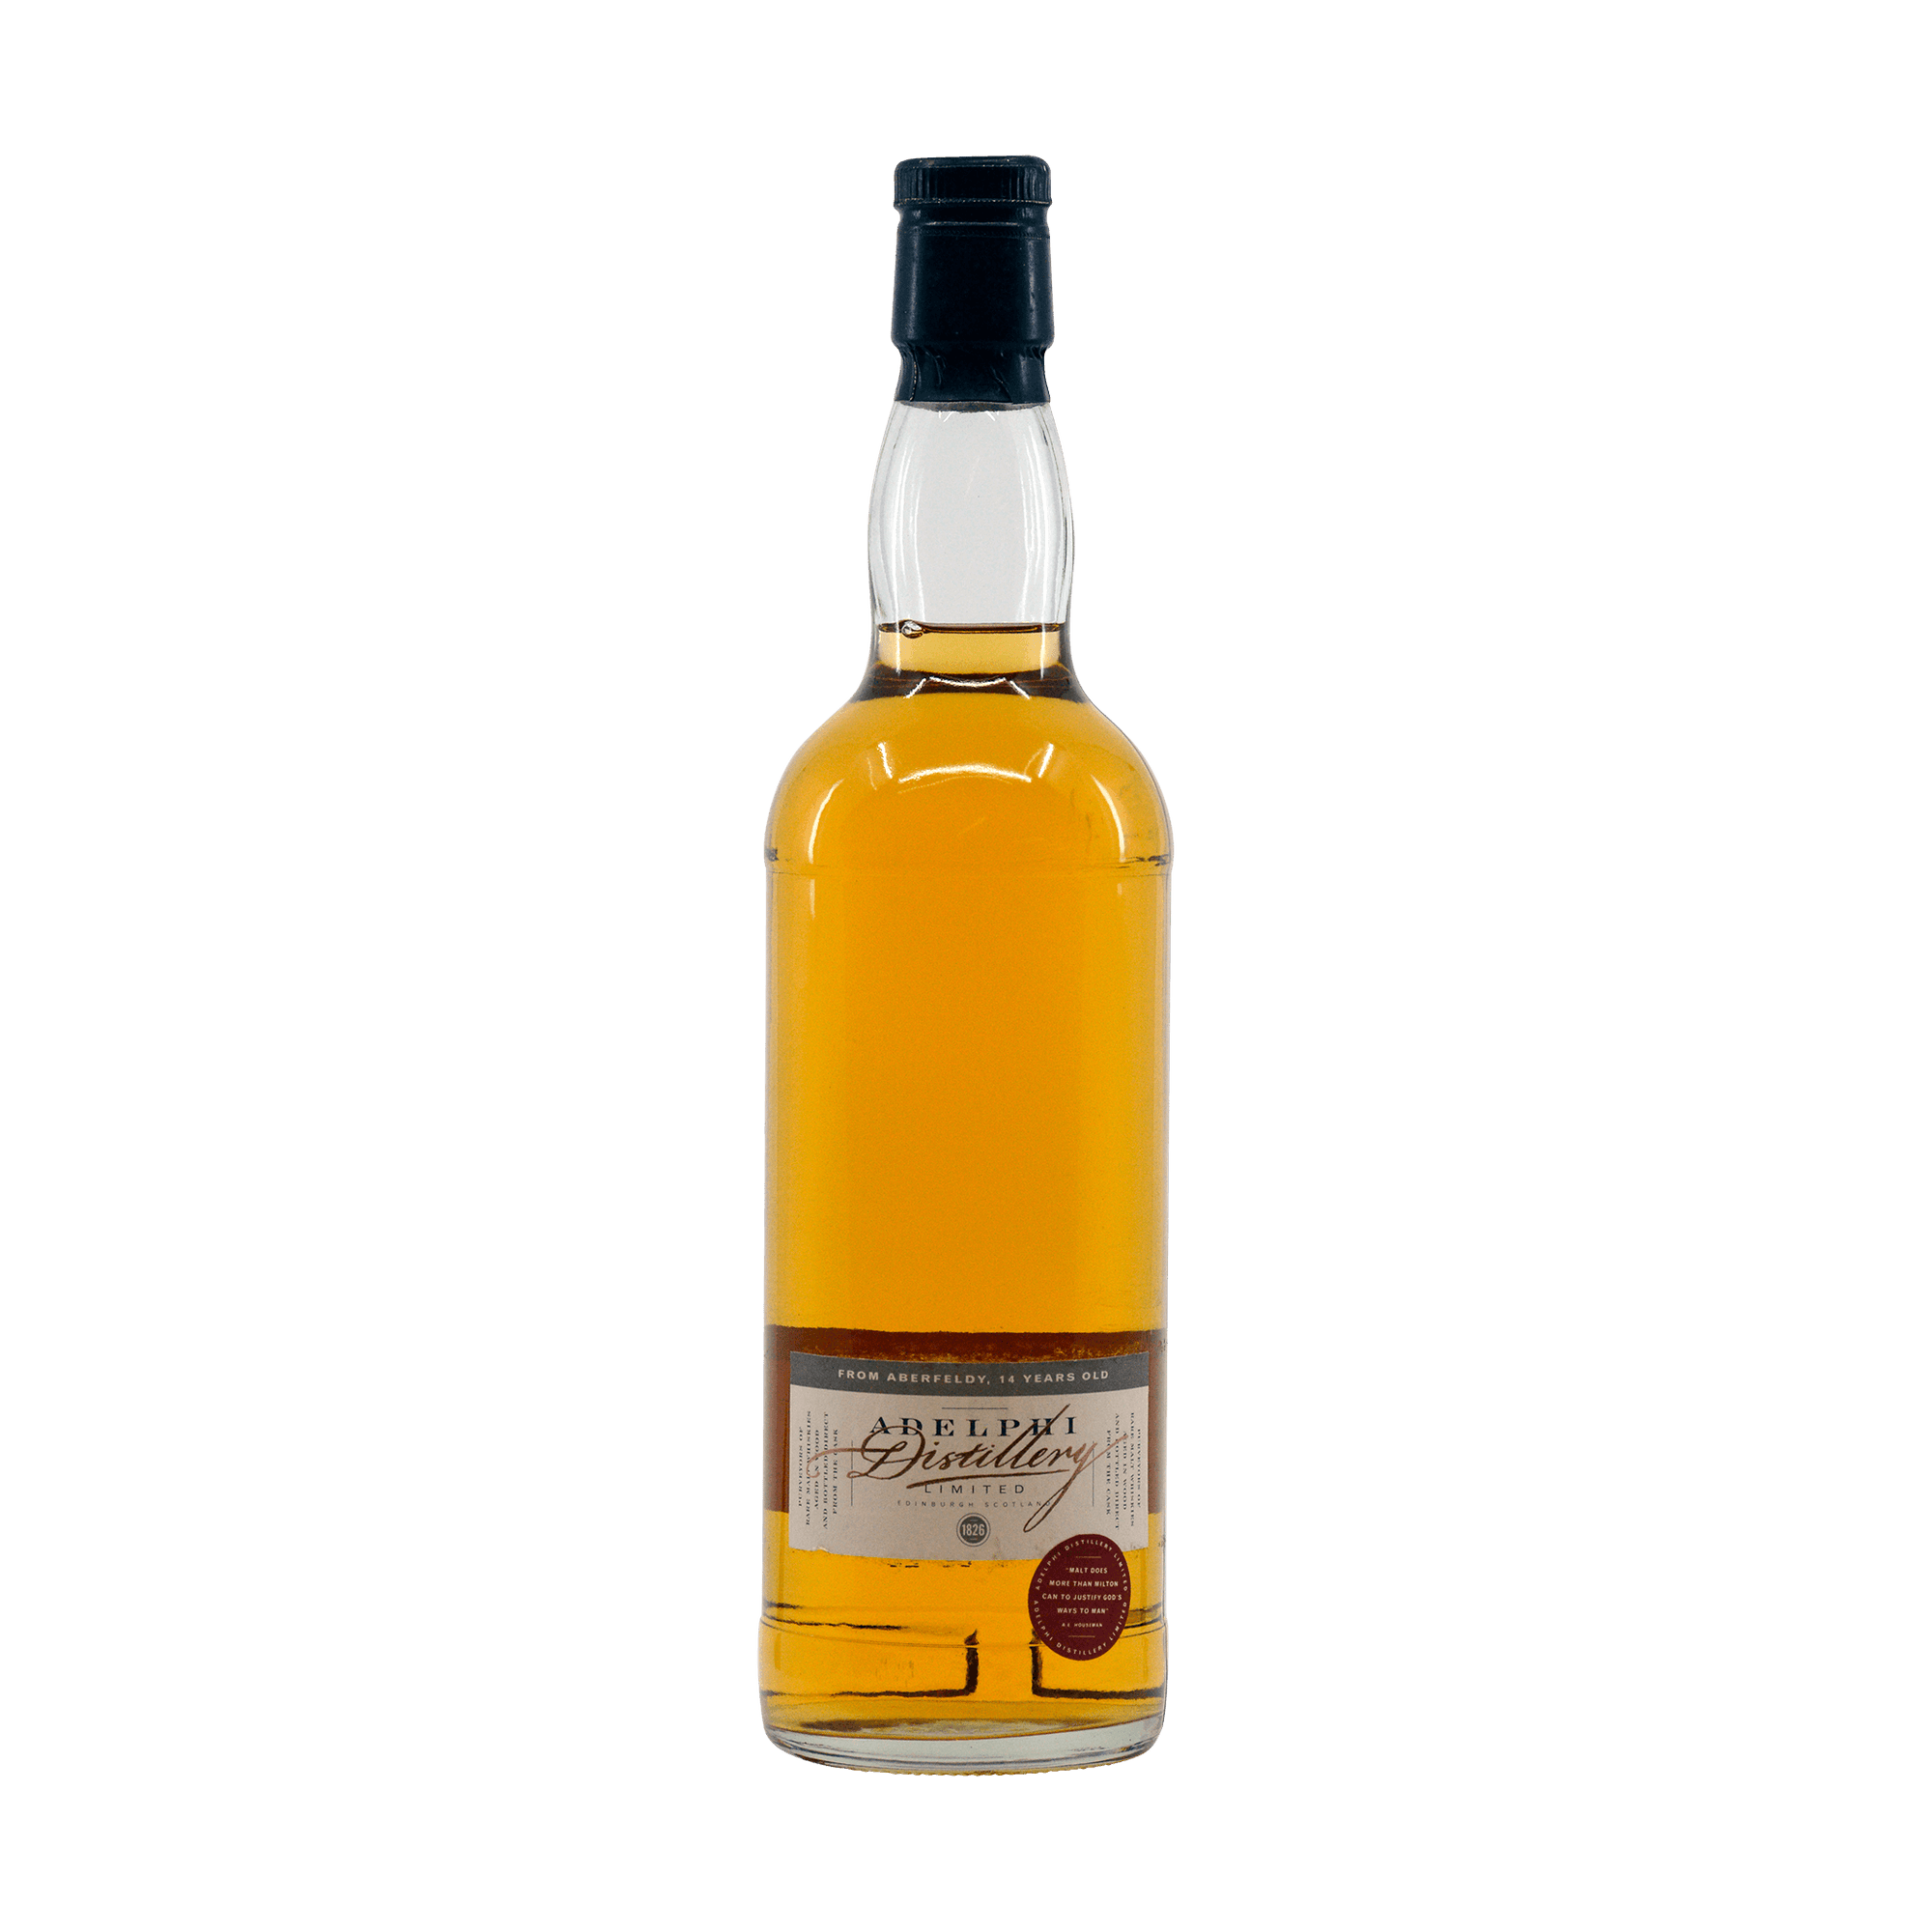 Aberfeldy 1983 14 Year Old Adelphi 59.50%